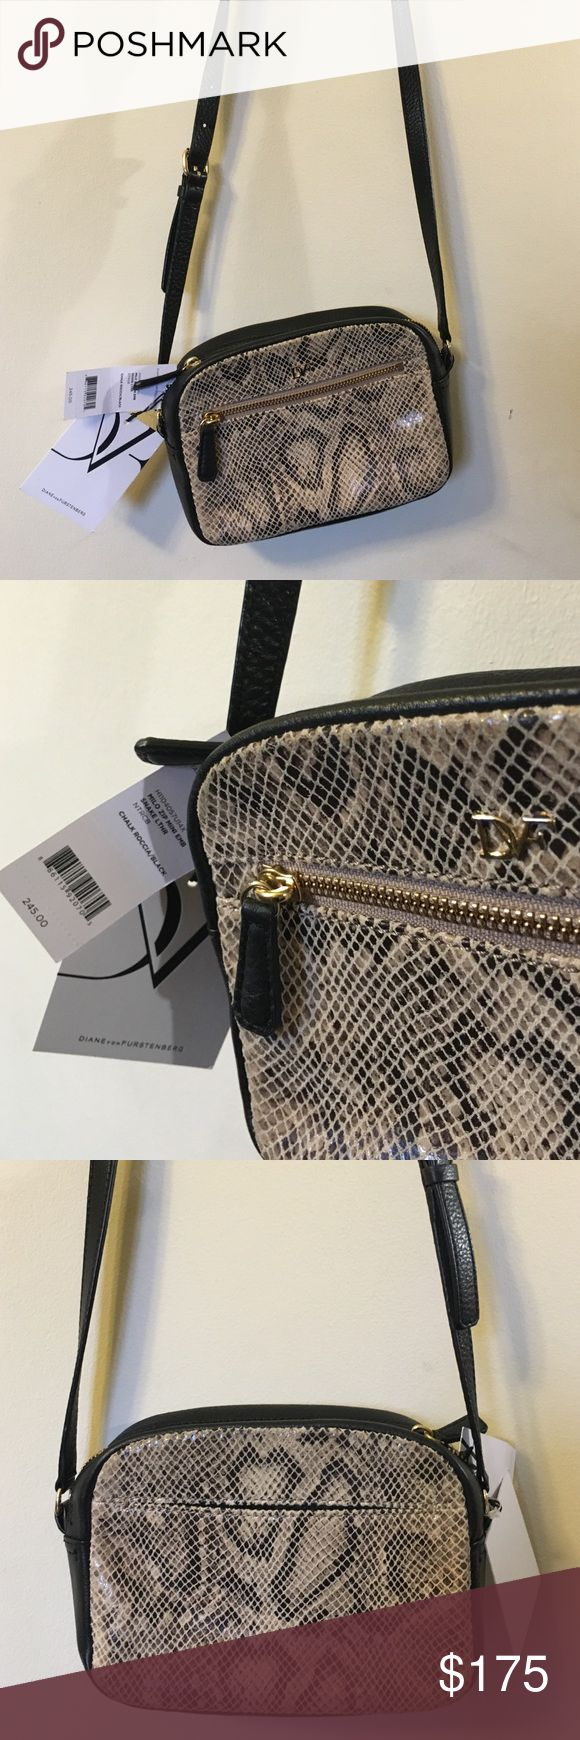 *SALE* Diane von Furstenberg DVF Bag Retail $245. NWT. This gorgeous bag is the DVF Milo Zip Crossbody Mini with chalk/black snake leather. It's lightweight and, in line with all DVF products, stylish and trendy. Reasonable offers welcome. Happy Poshing! Diane von Furstenberg Bags Crossbody Bags